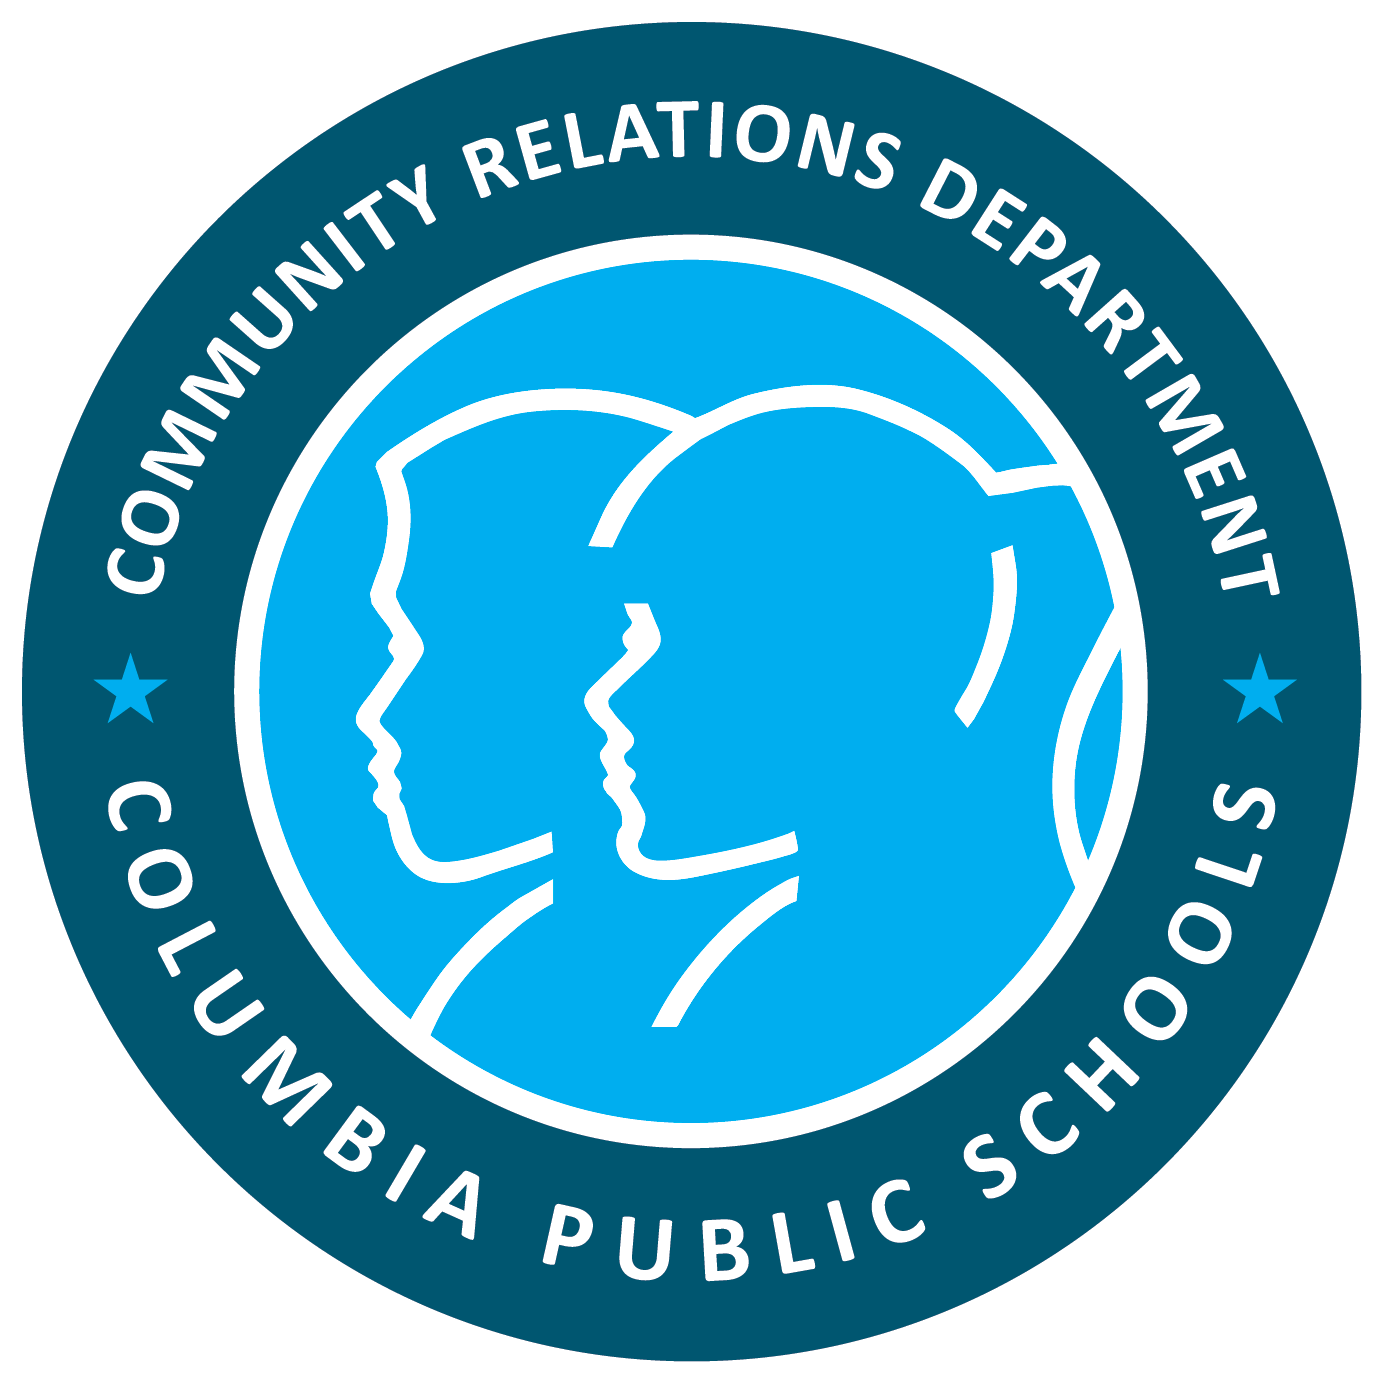 CommunityRelationsDepartmentLogo